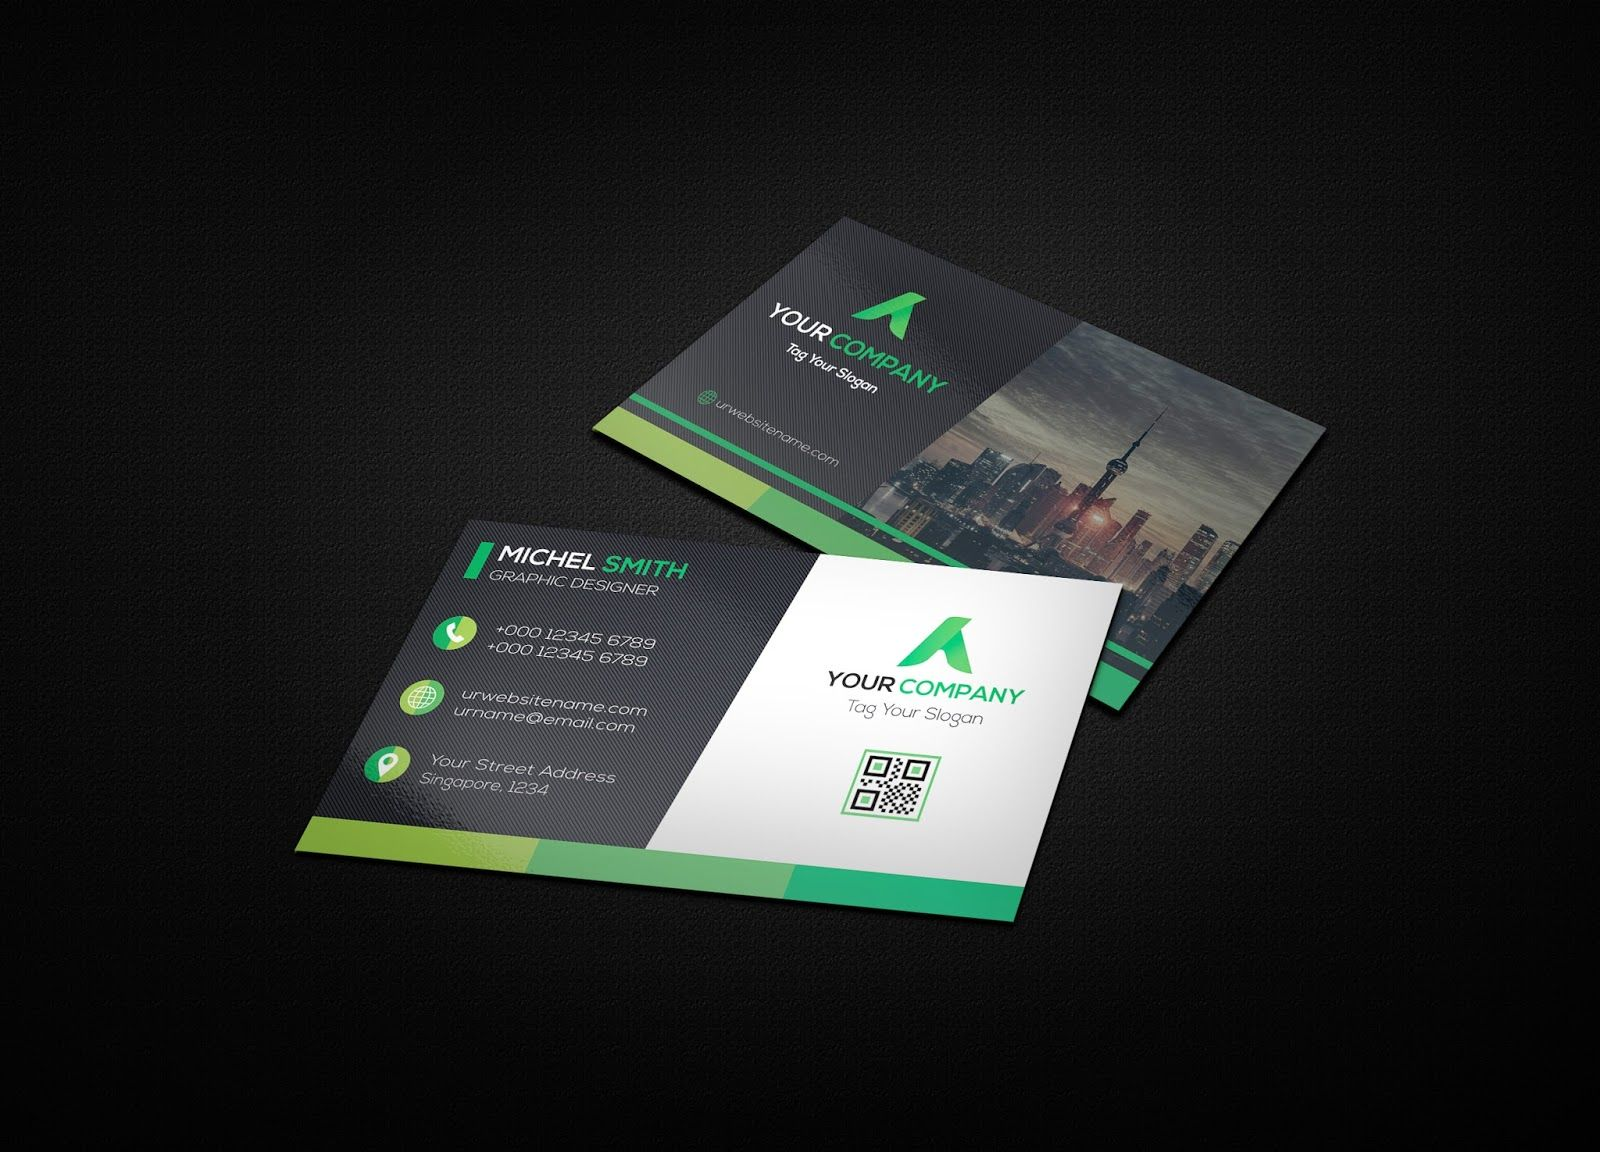 50 best free high quality psd business card mockups top 50 free 50 best free high quality psd business card mockups top 50 free psd business card templates and mockups 2017 graphic school friedricerecipe Choice Image